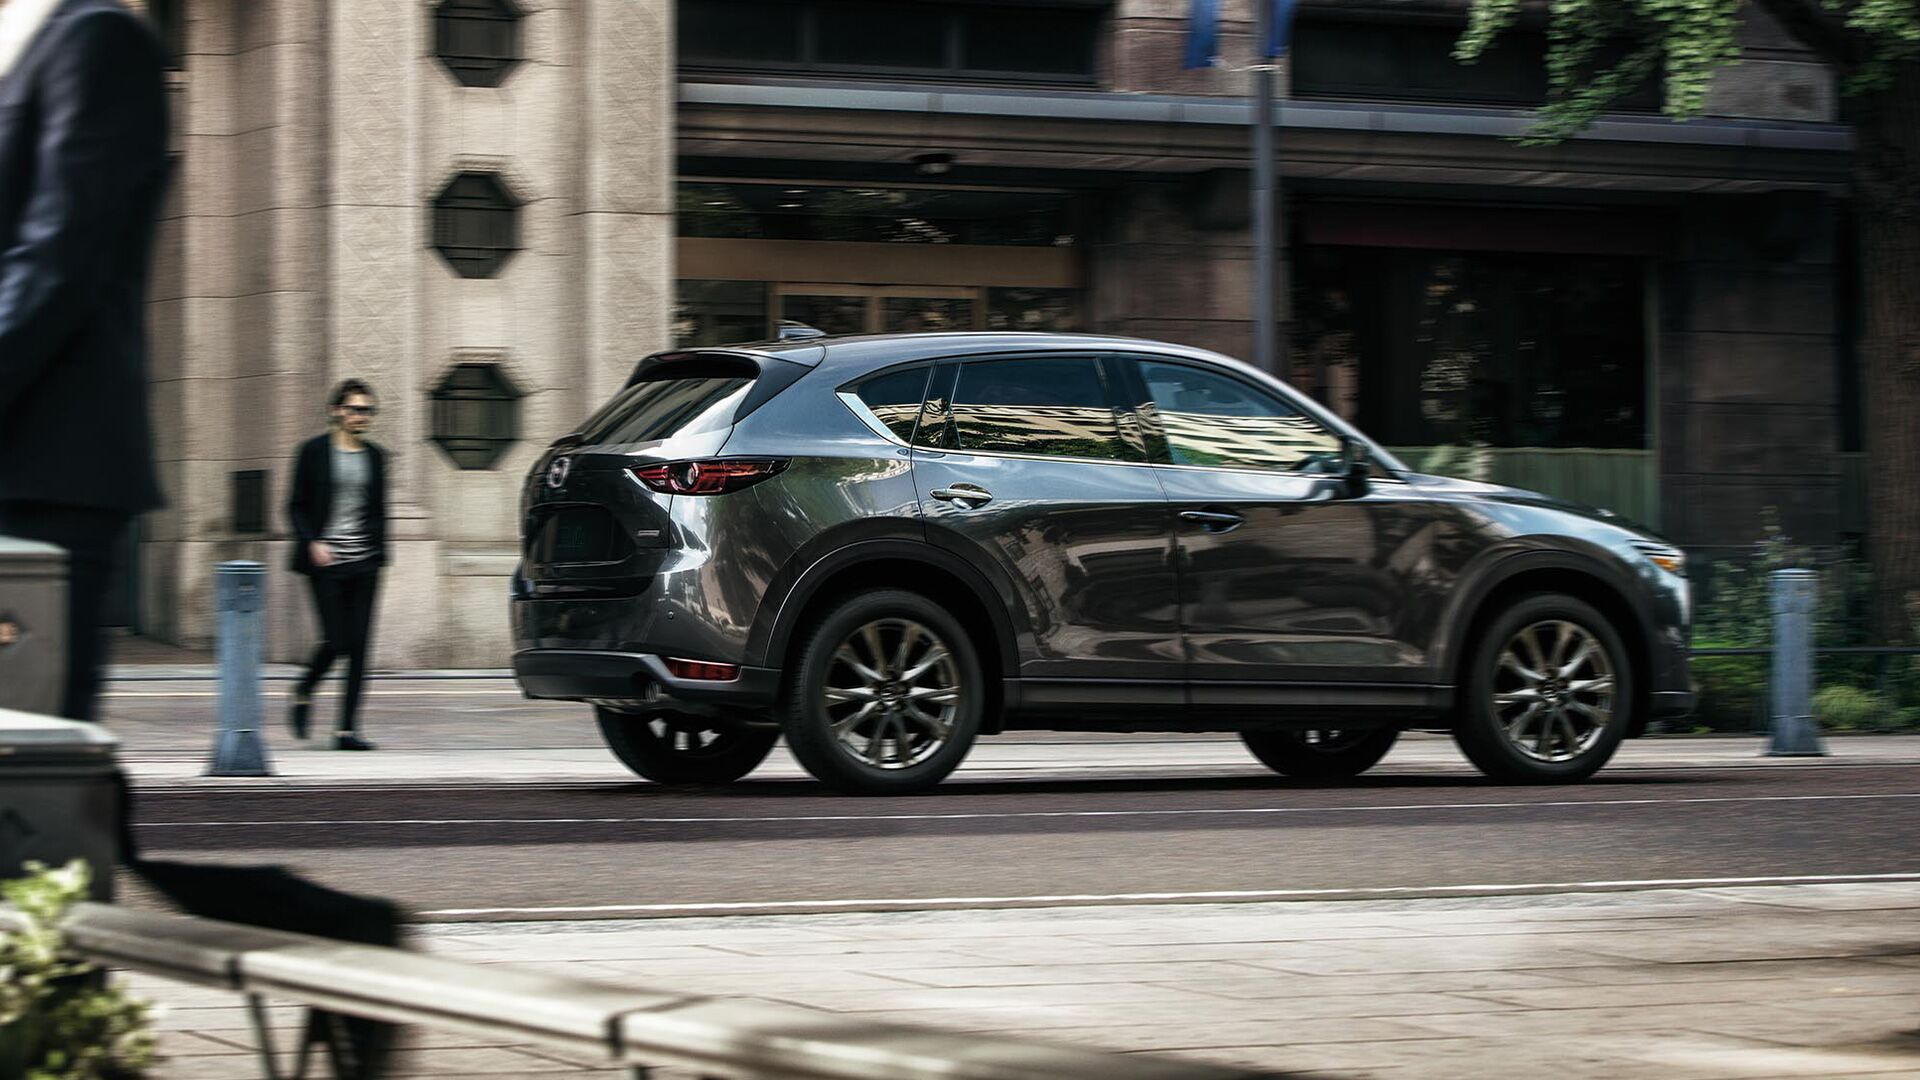 2020 Mazda CX-5 in Las Vegas, NV